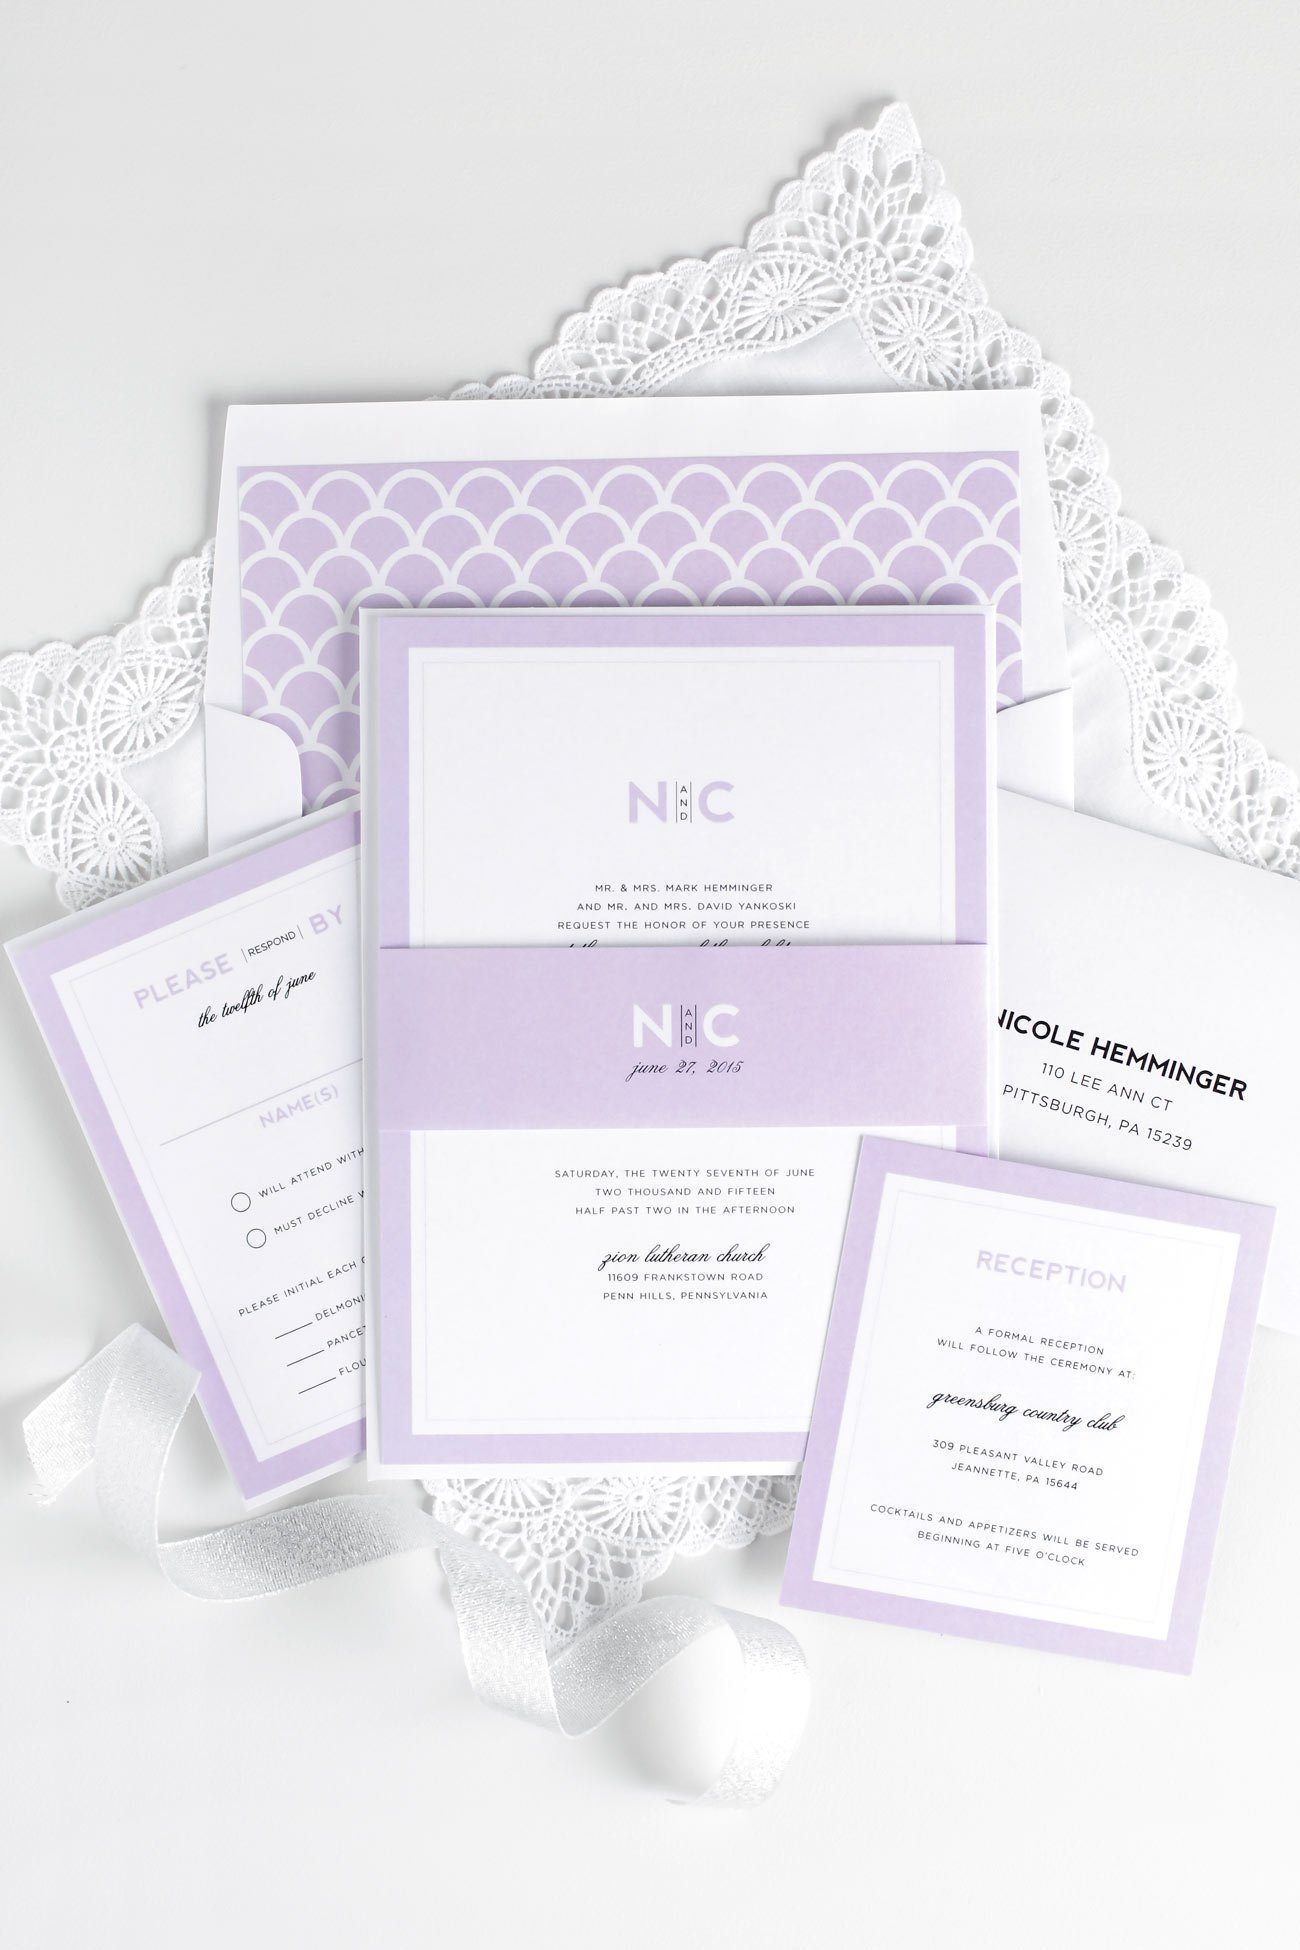 Lilac wedding invitations with a simple modern monogram